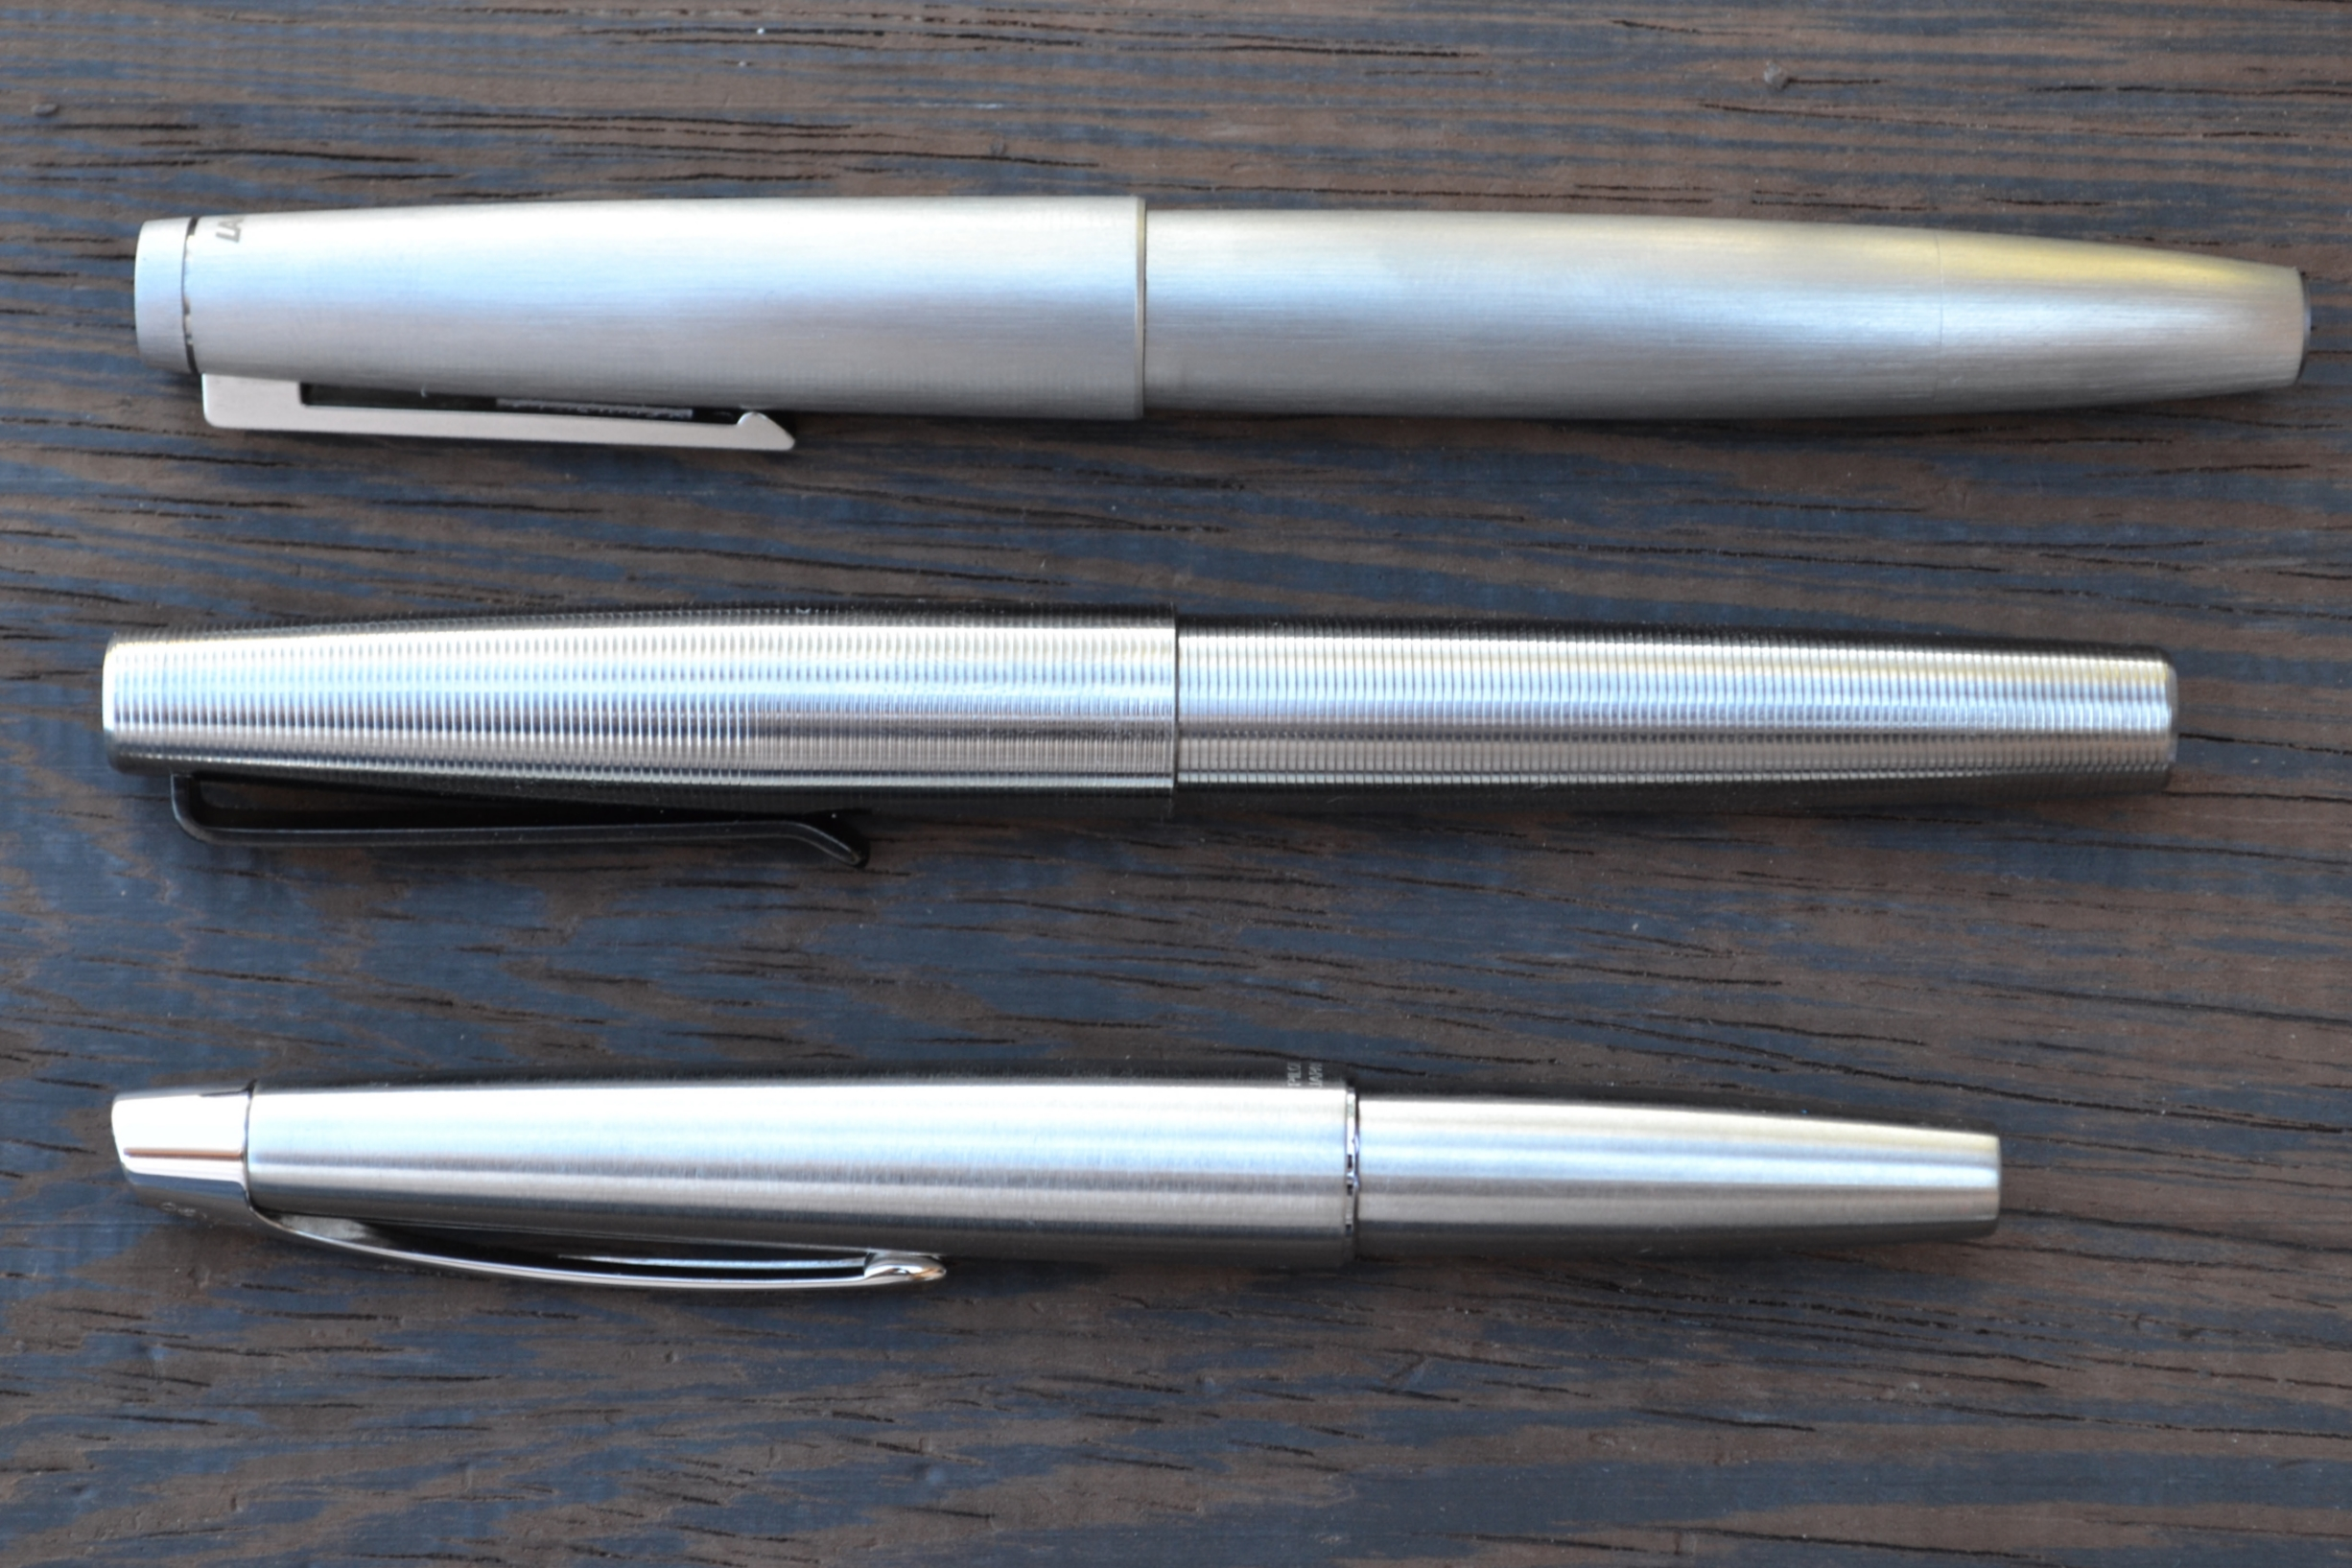 Stainless LAMY 2000, Tactile Turn Gist, Pilot M90